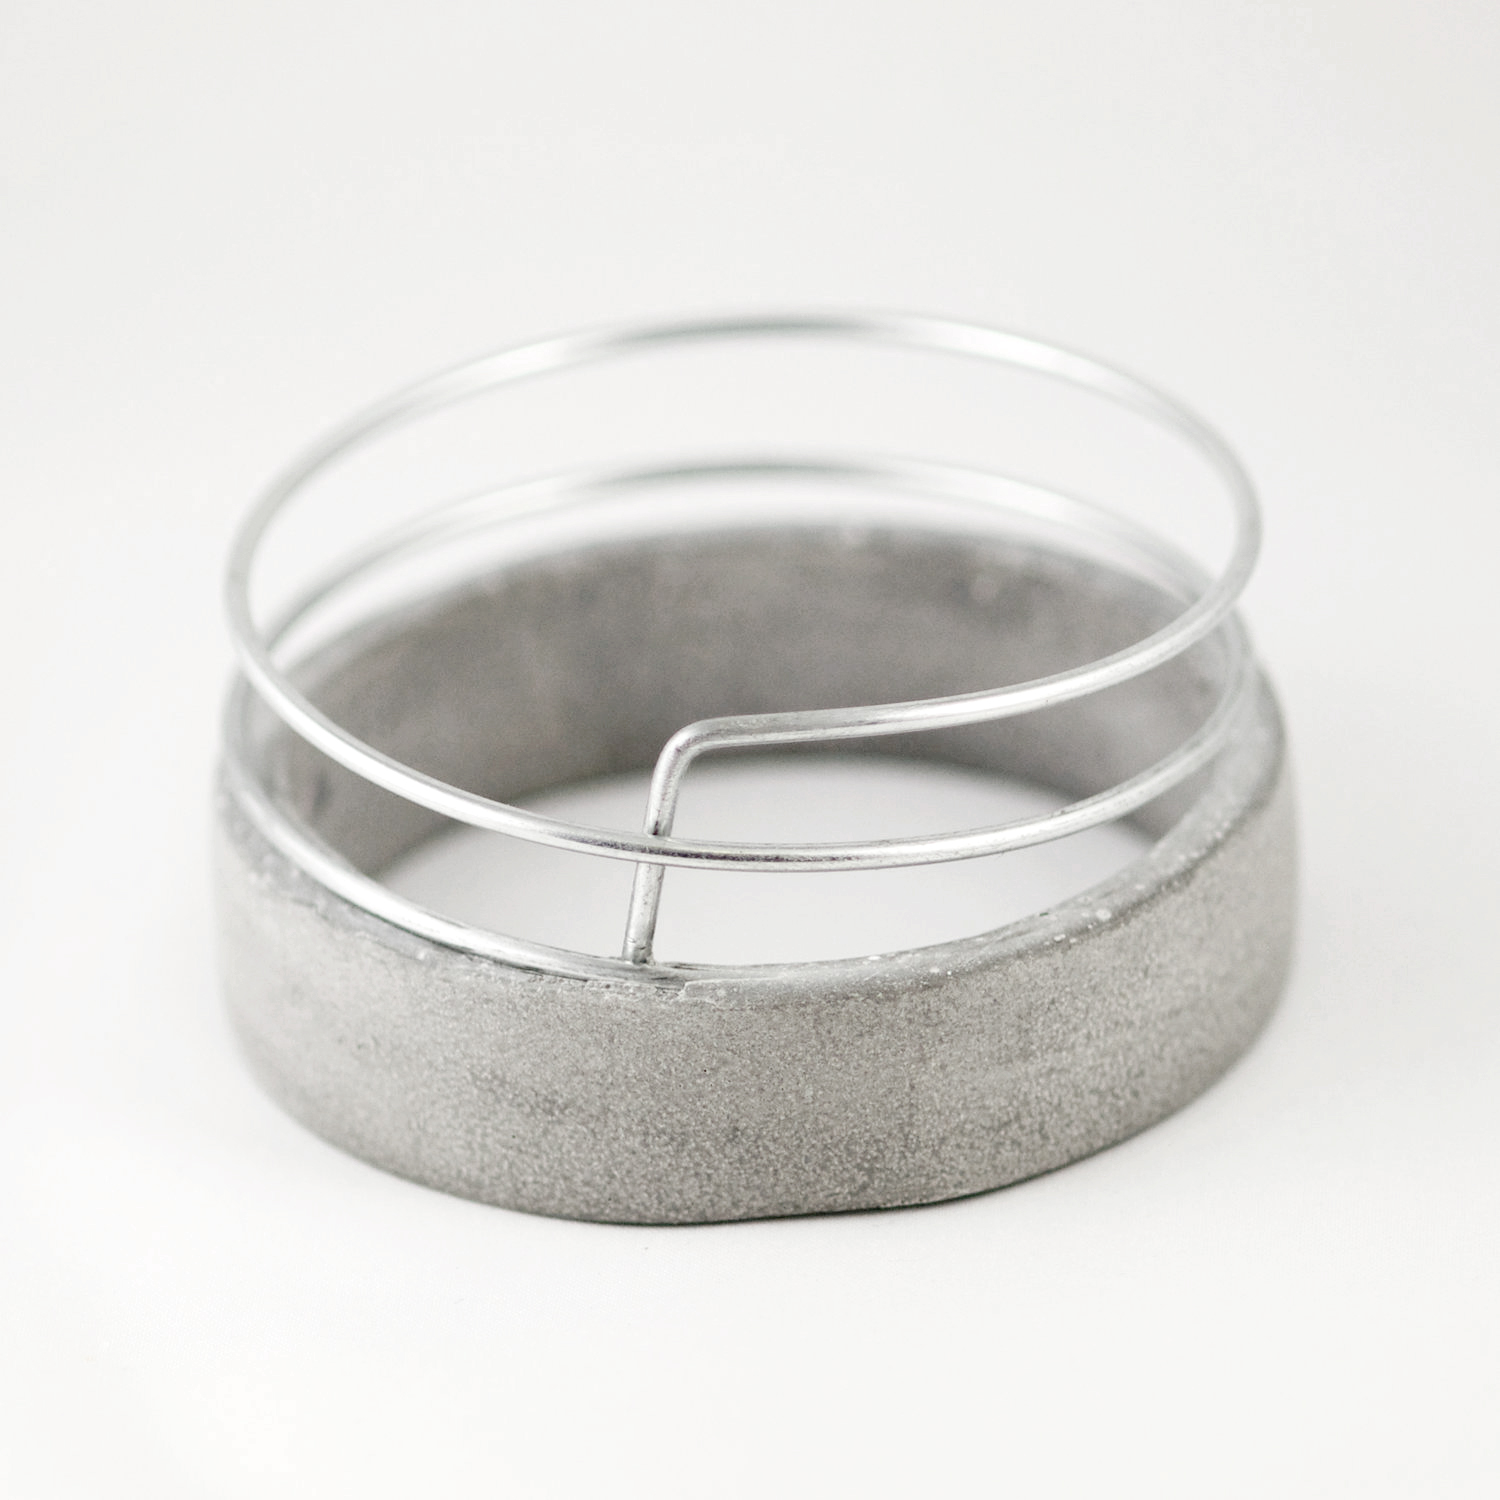 CEMENT CHEMISTRY Even w/ Wire Bracelet | The Greek Designers